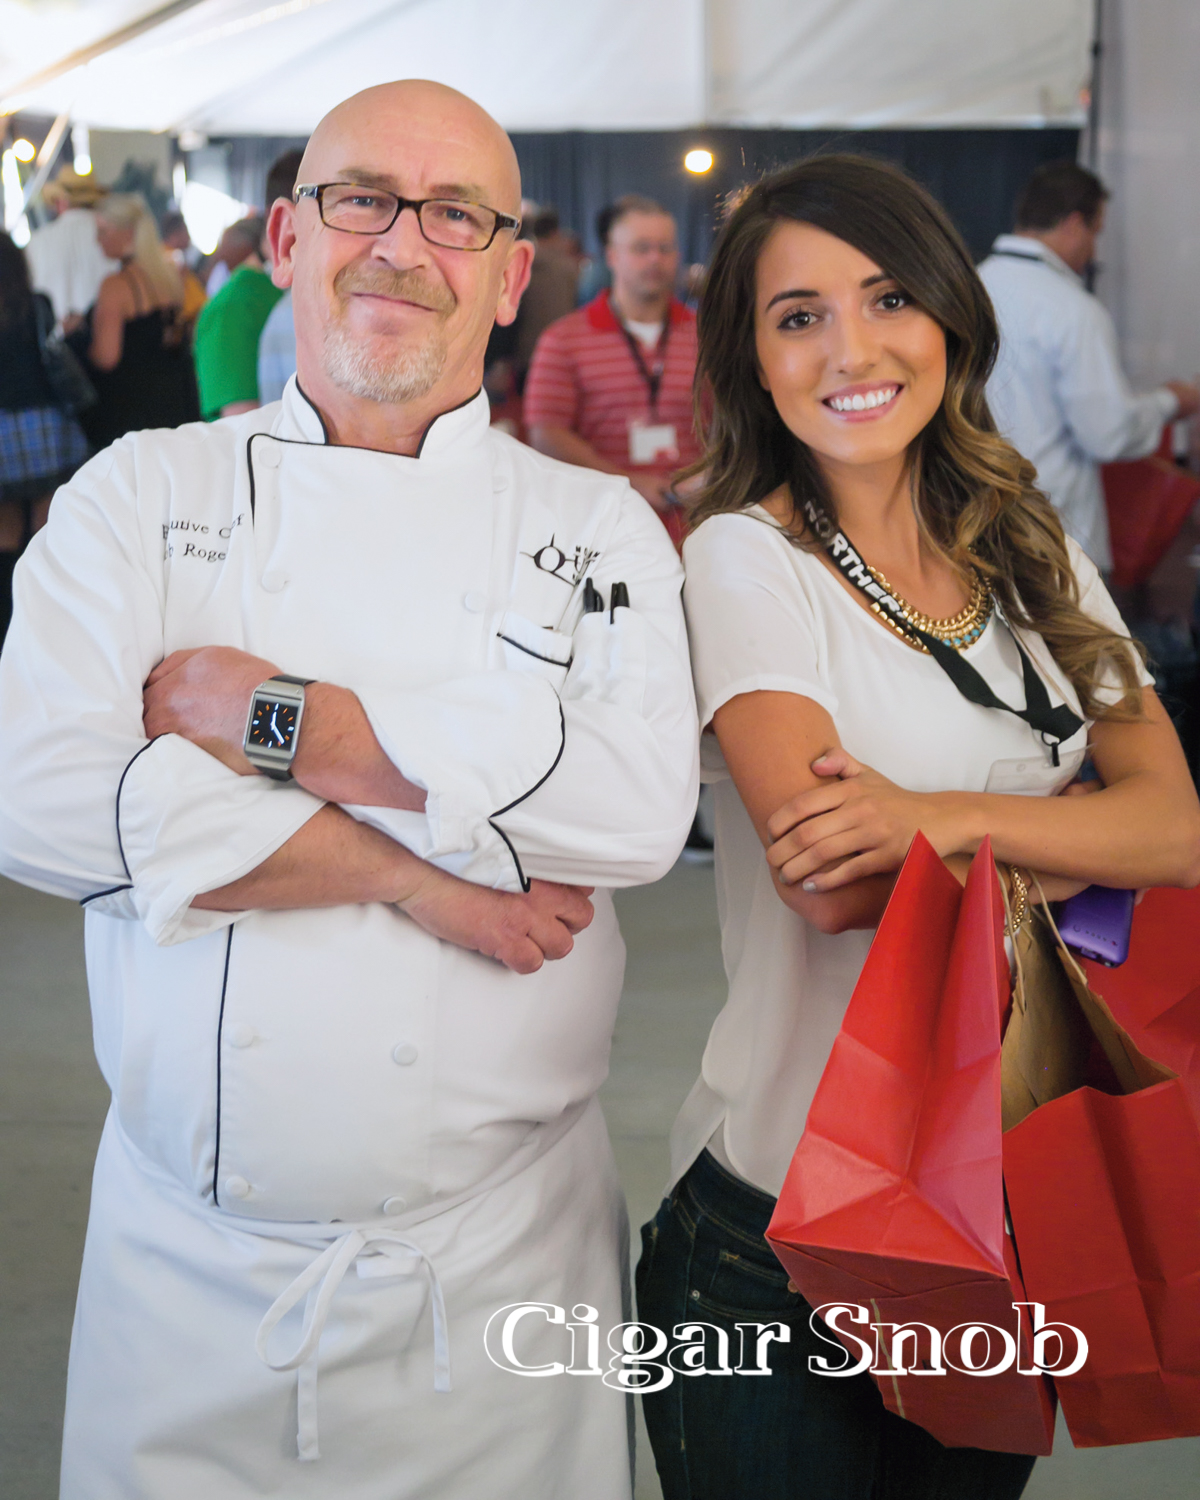 Northern Quest Exec. Chef Bob Rogers and Rachel Snelling